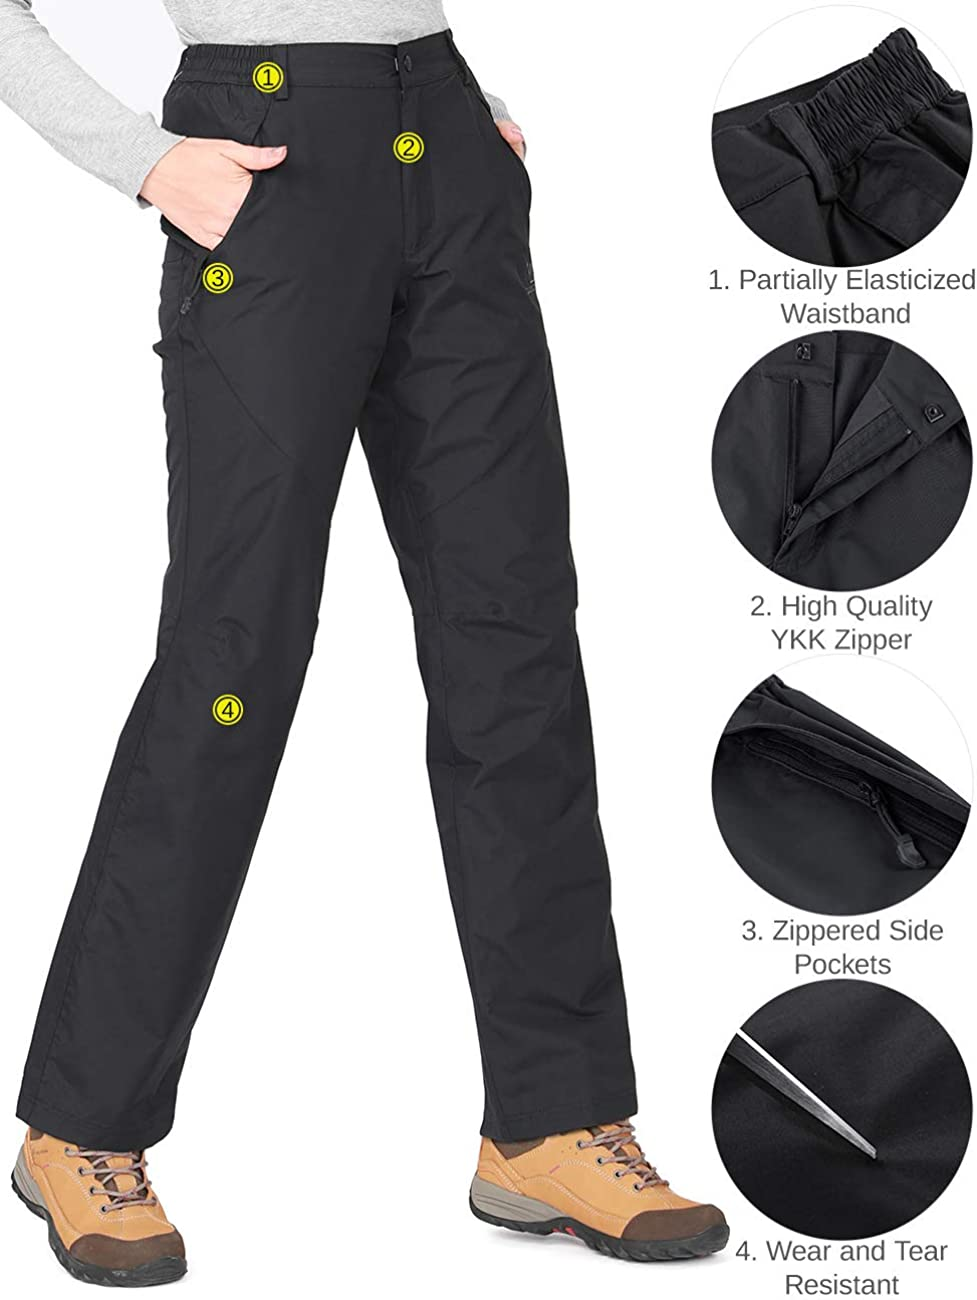 CAMEL CROWN Womens Snow Ski Pants Insulated Fleece Lined Waterproof Windproof Outdoor Sports Mountain Hiking Pants